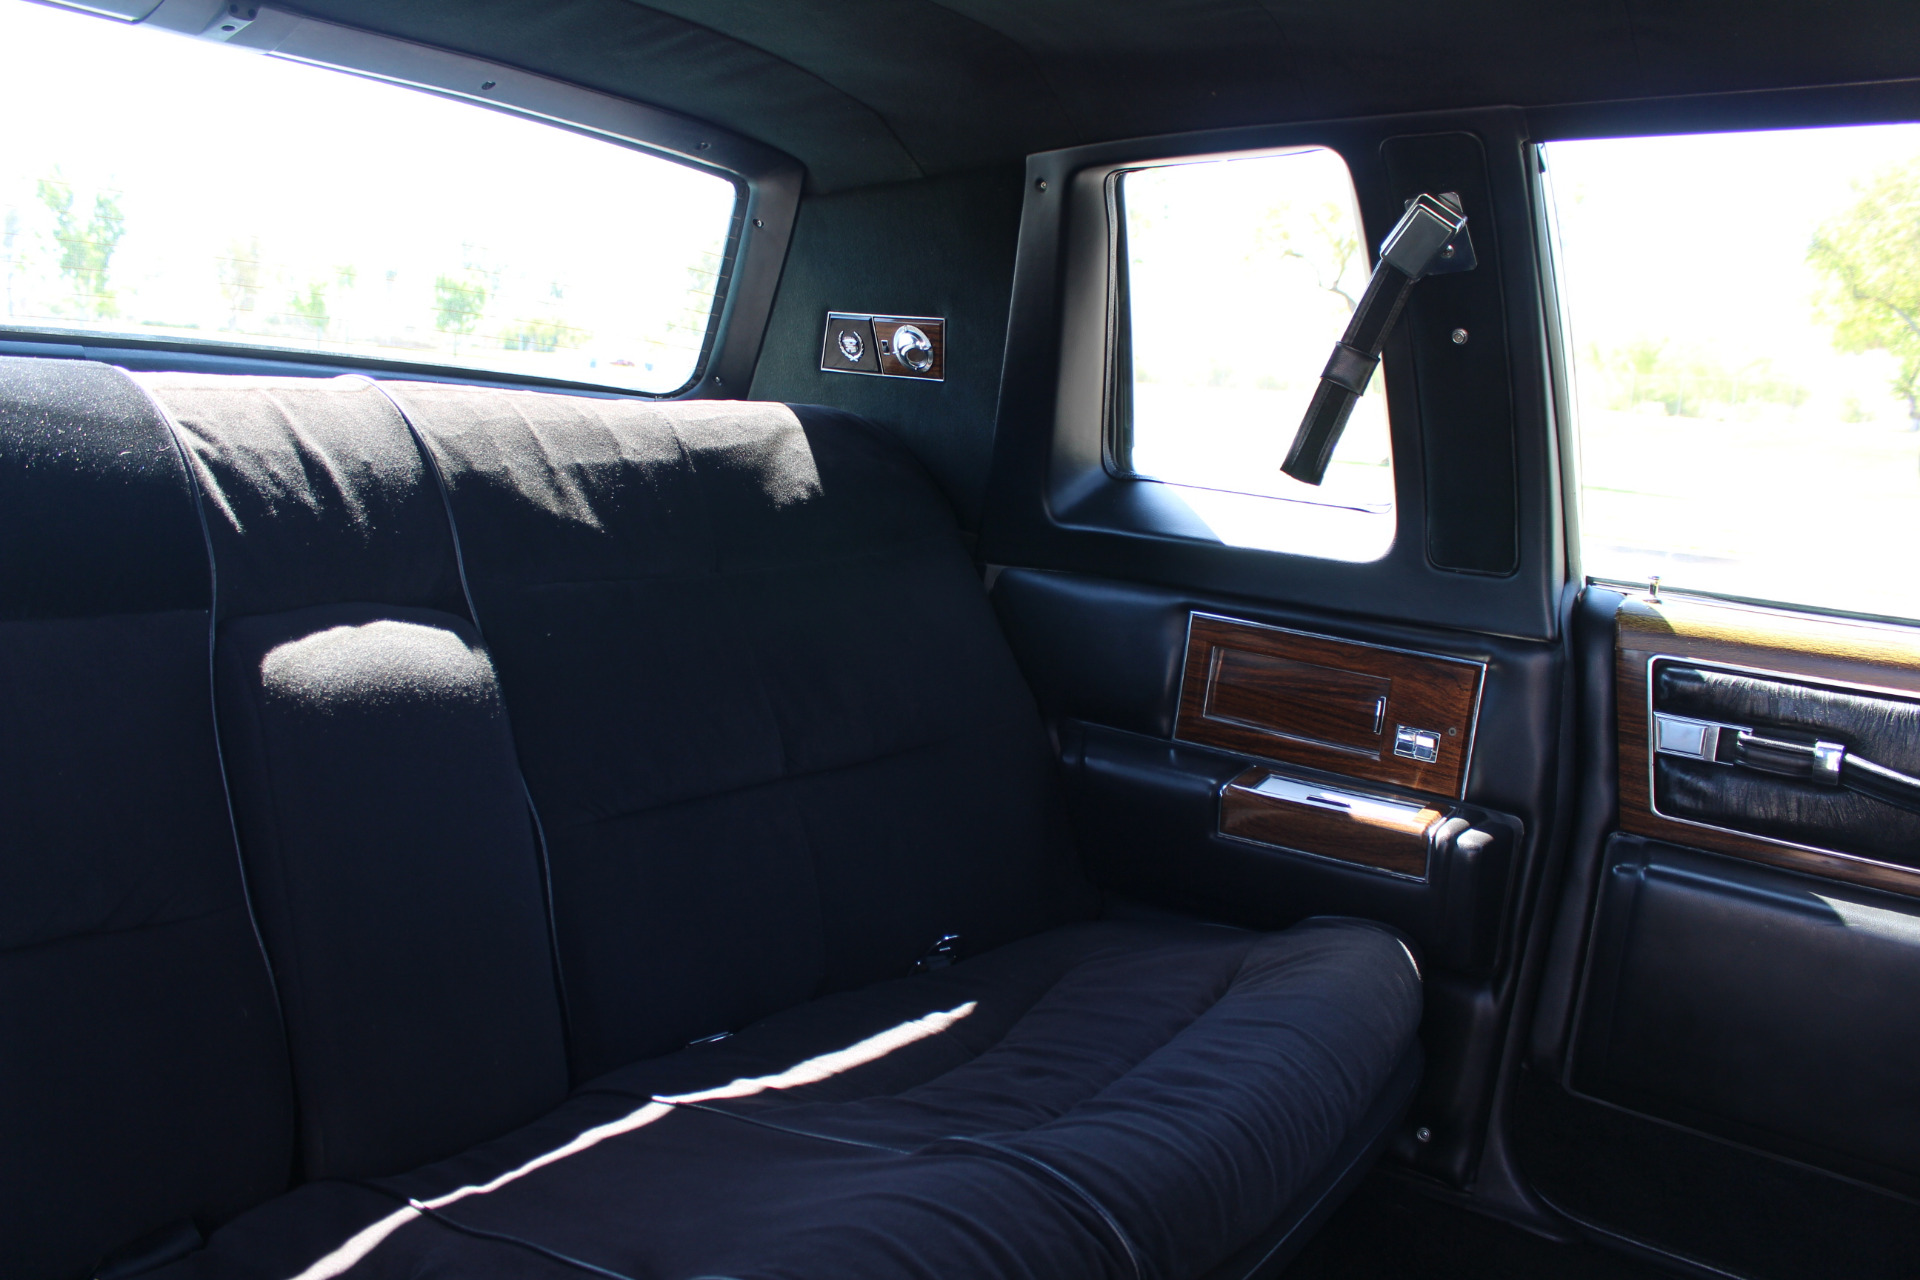 1977 Cadillac Fleetwood Limo Stock # CA436 for sale near